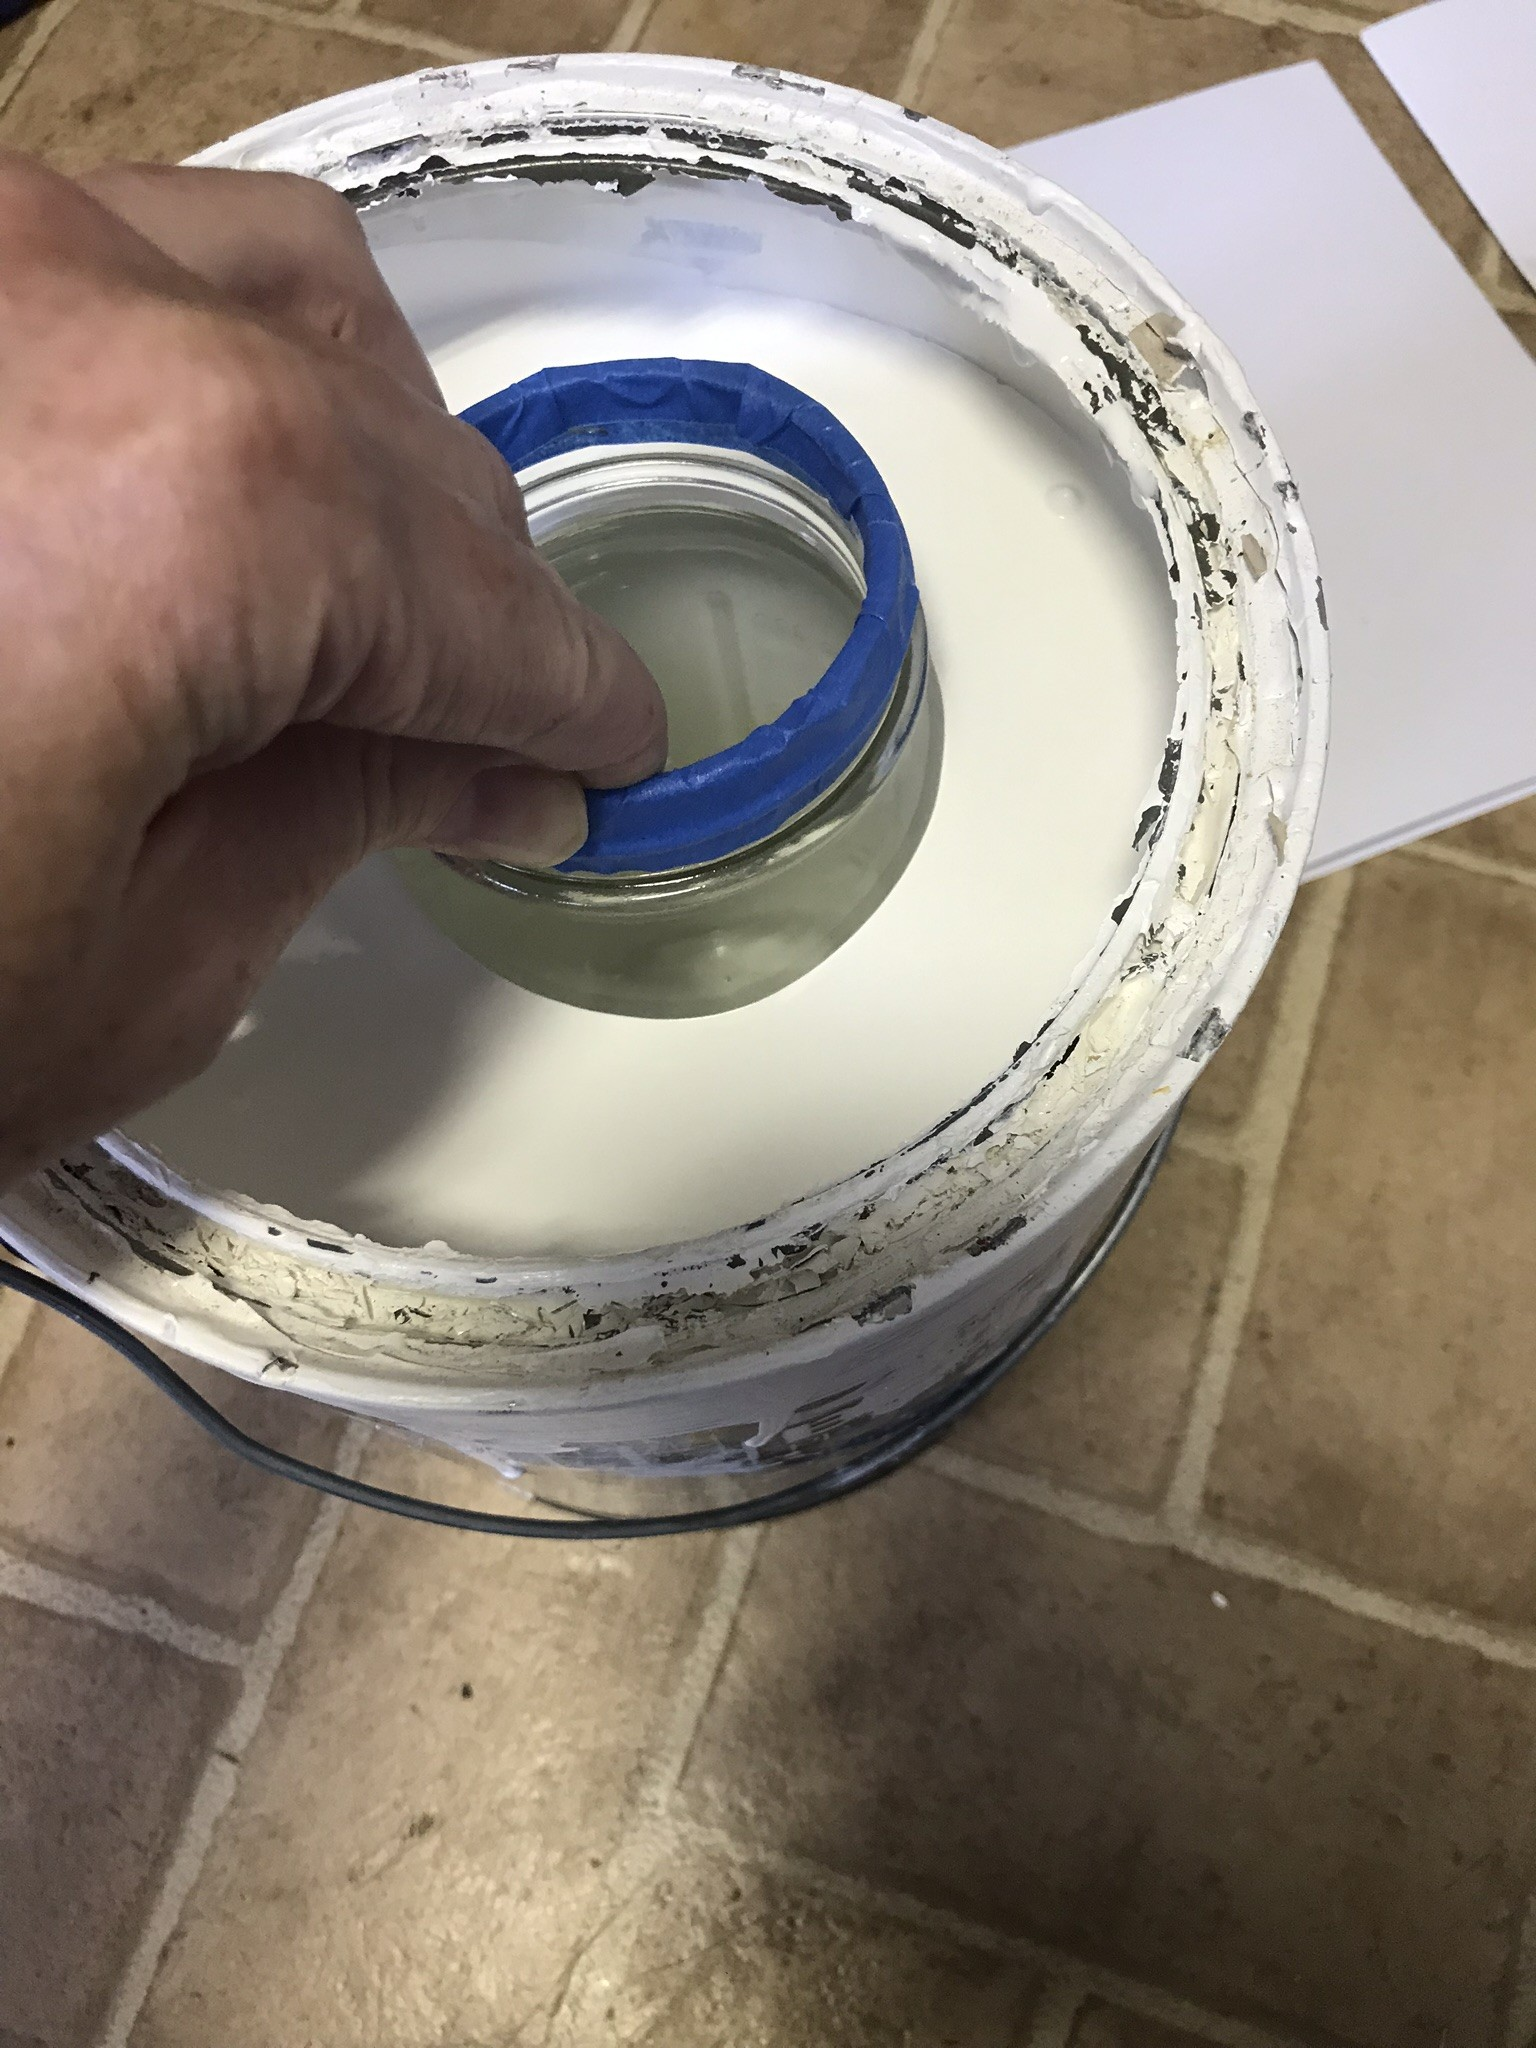 dipping the mason jar in the paint can